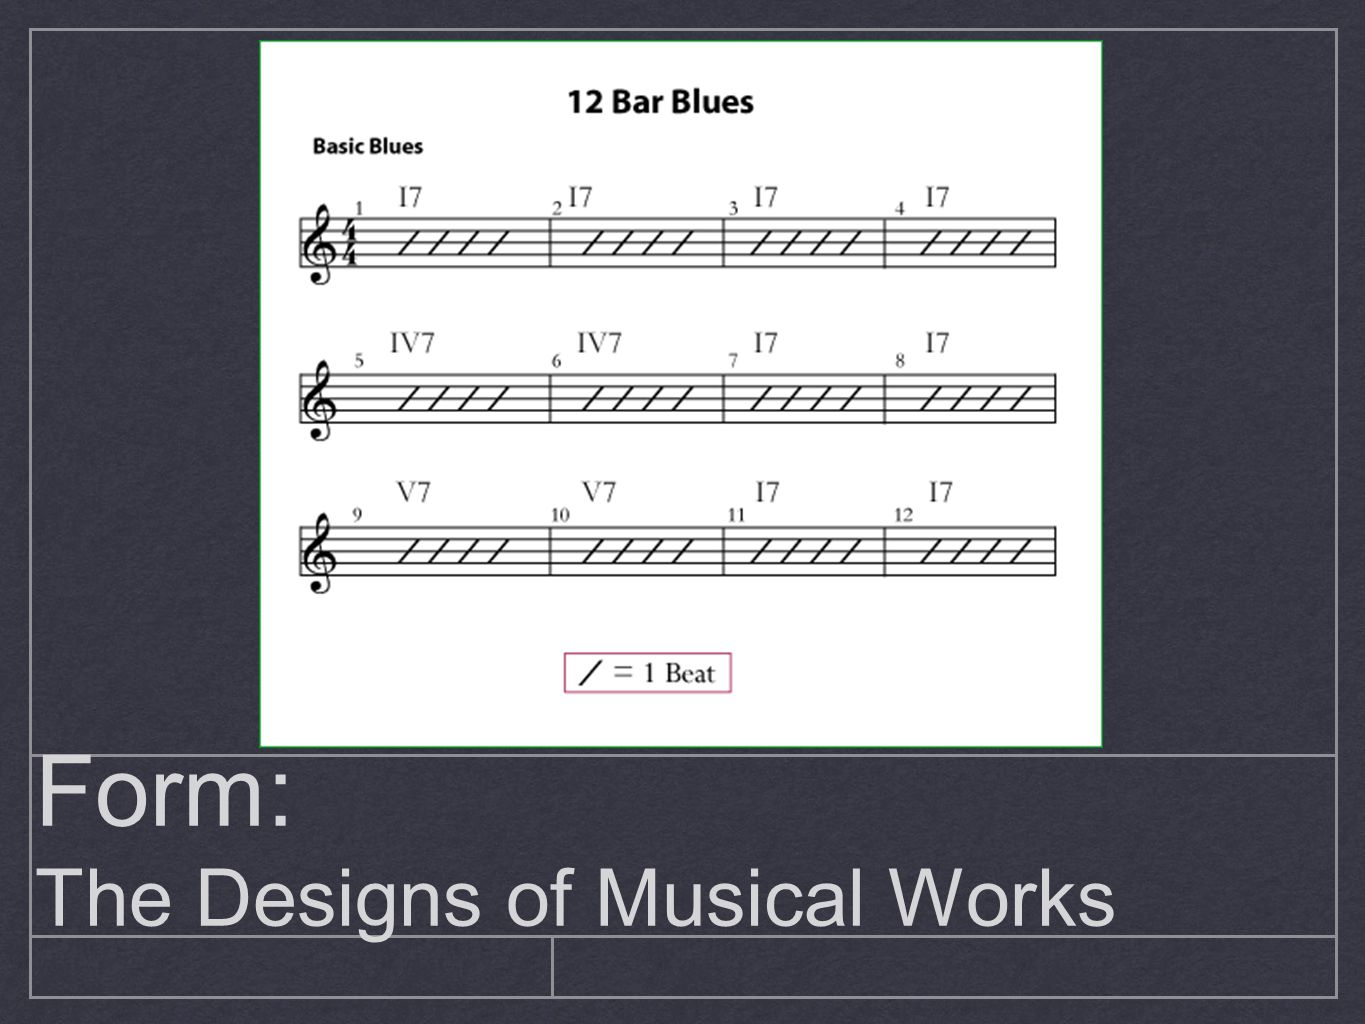 Form: The Designs of Musical Works